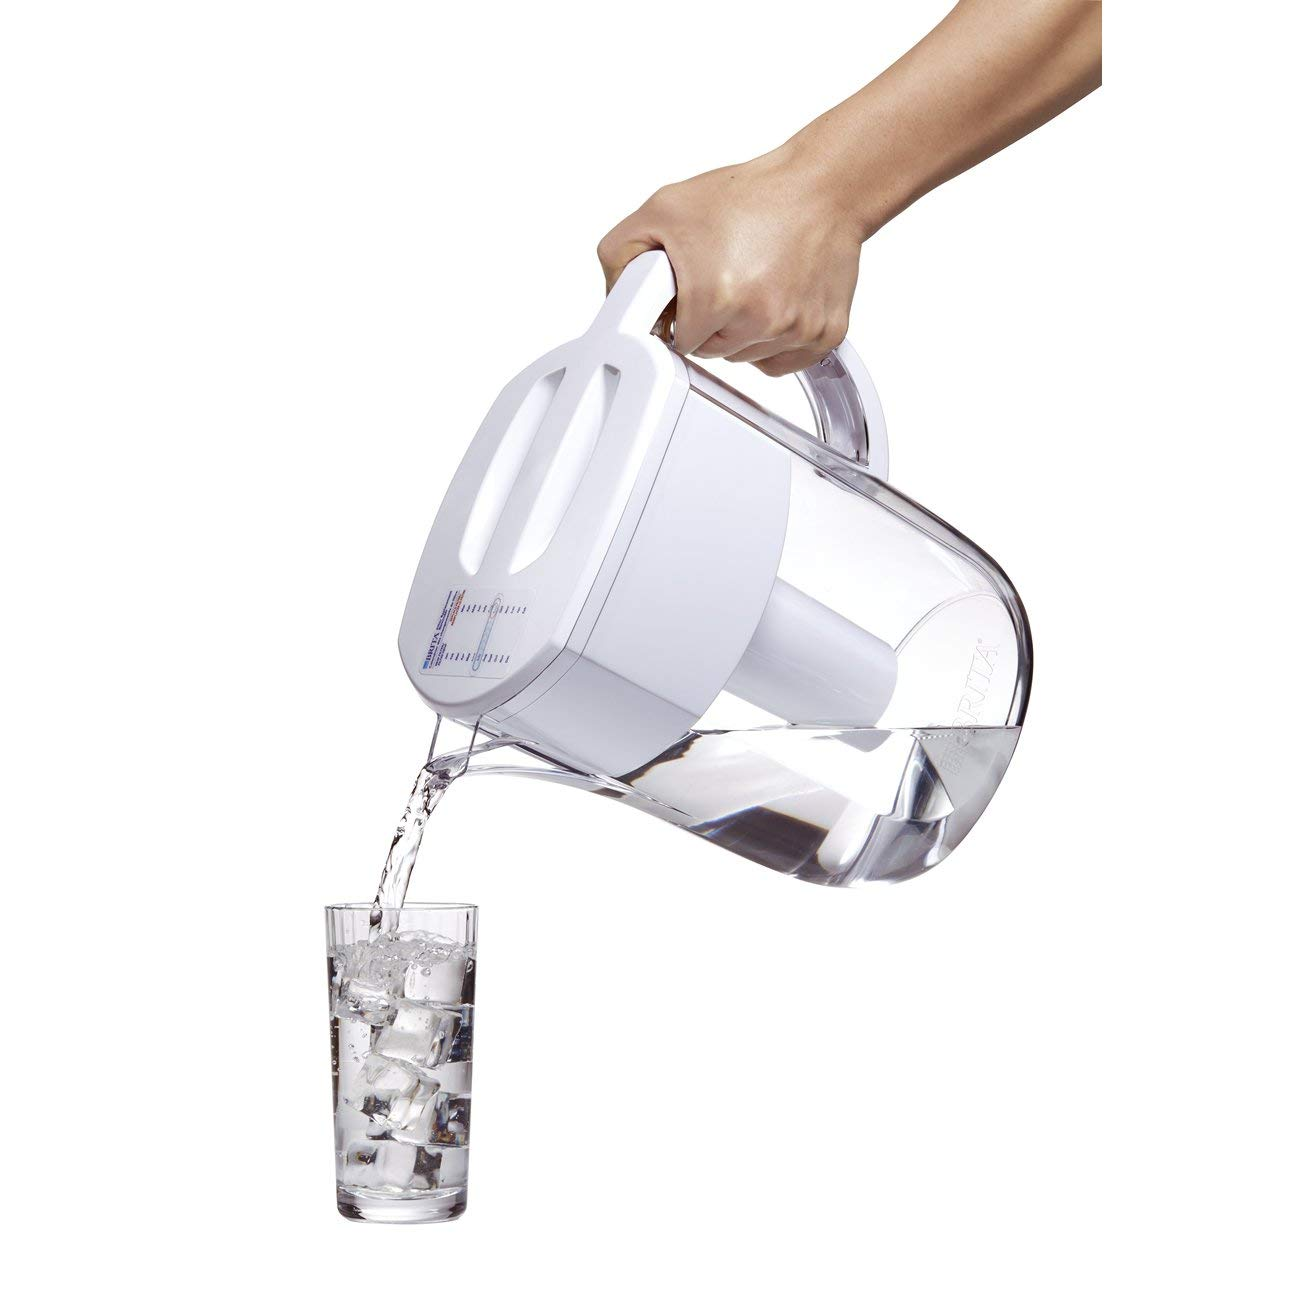 Brita Large 10 Cup Everyday Water Pitcher with Filter - BPA Free - White by Brita (Image #9)